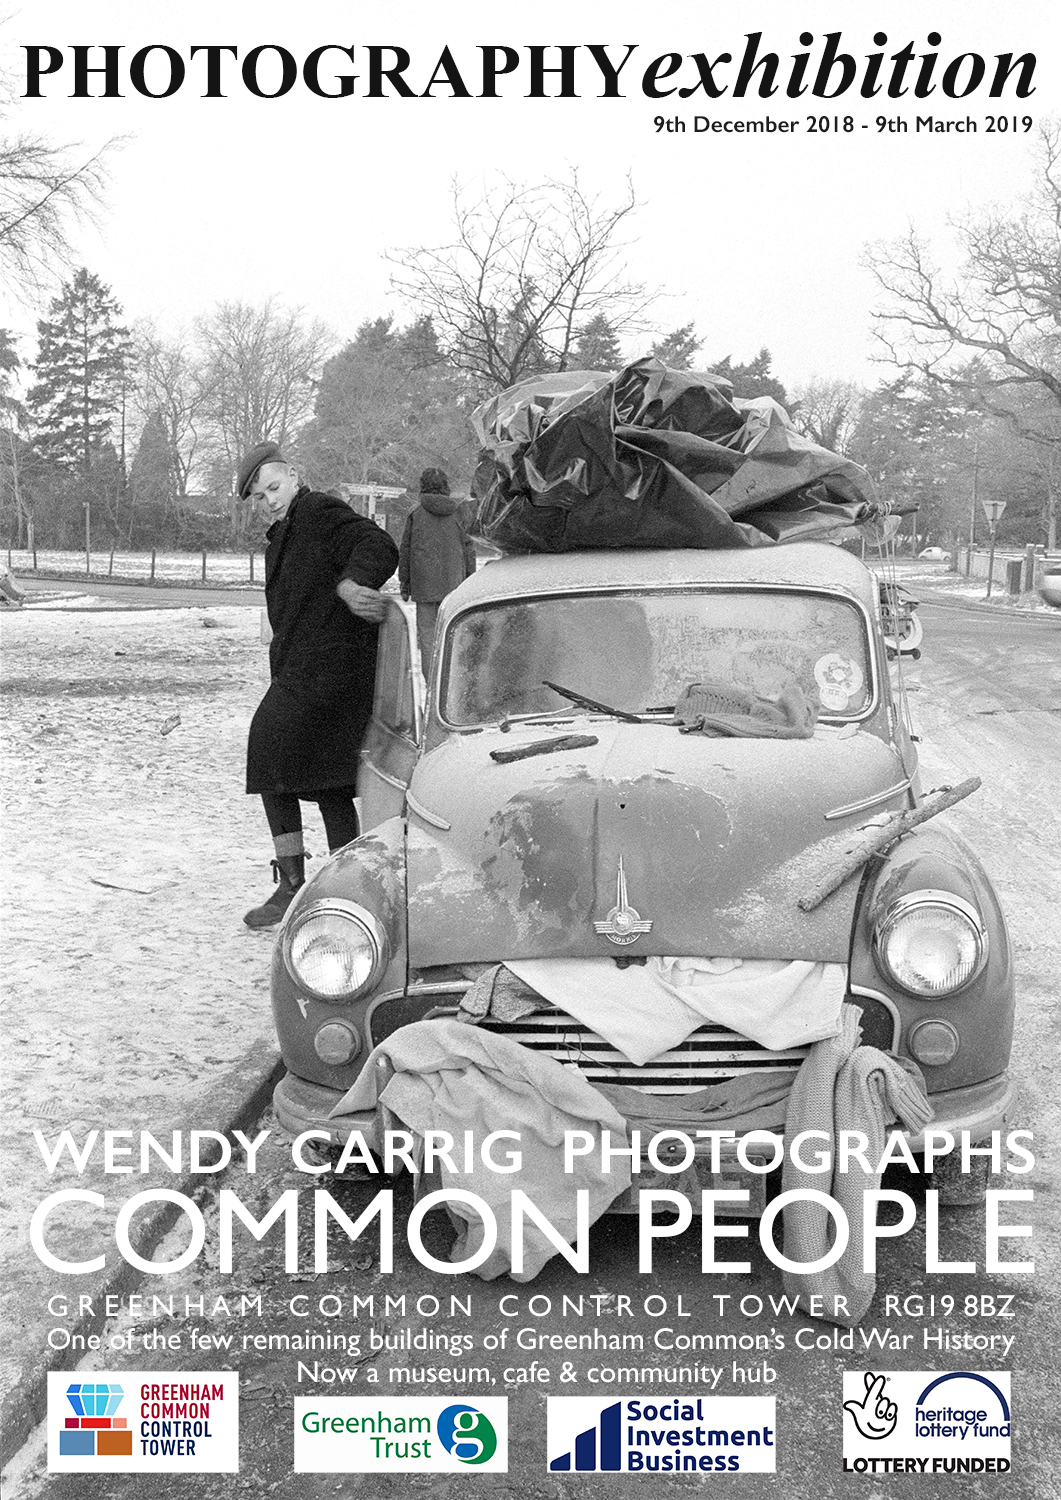 COMMON PEOPLE photography exhibition poster